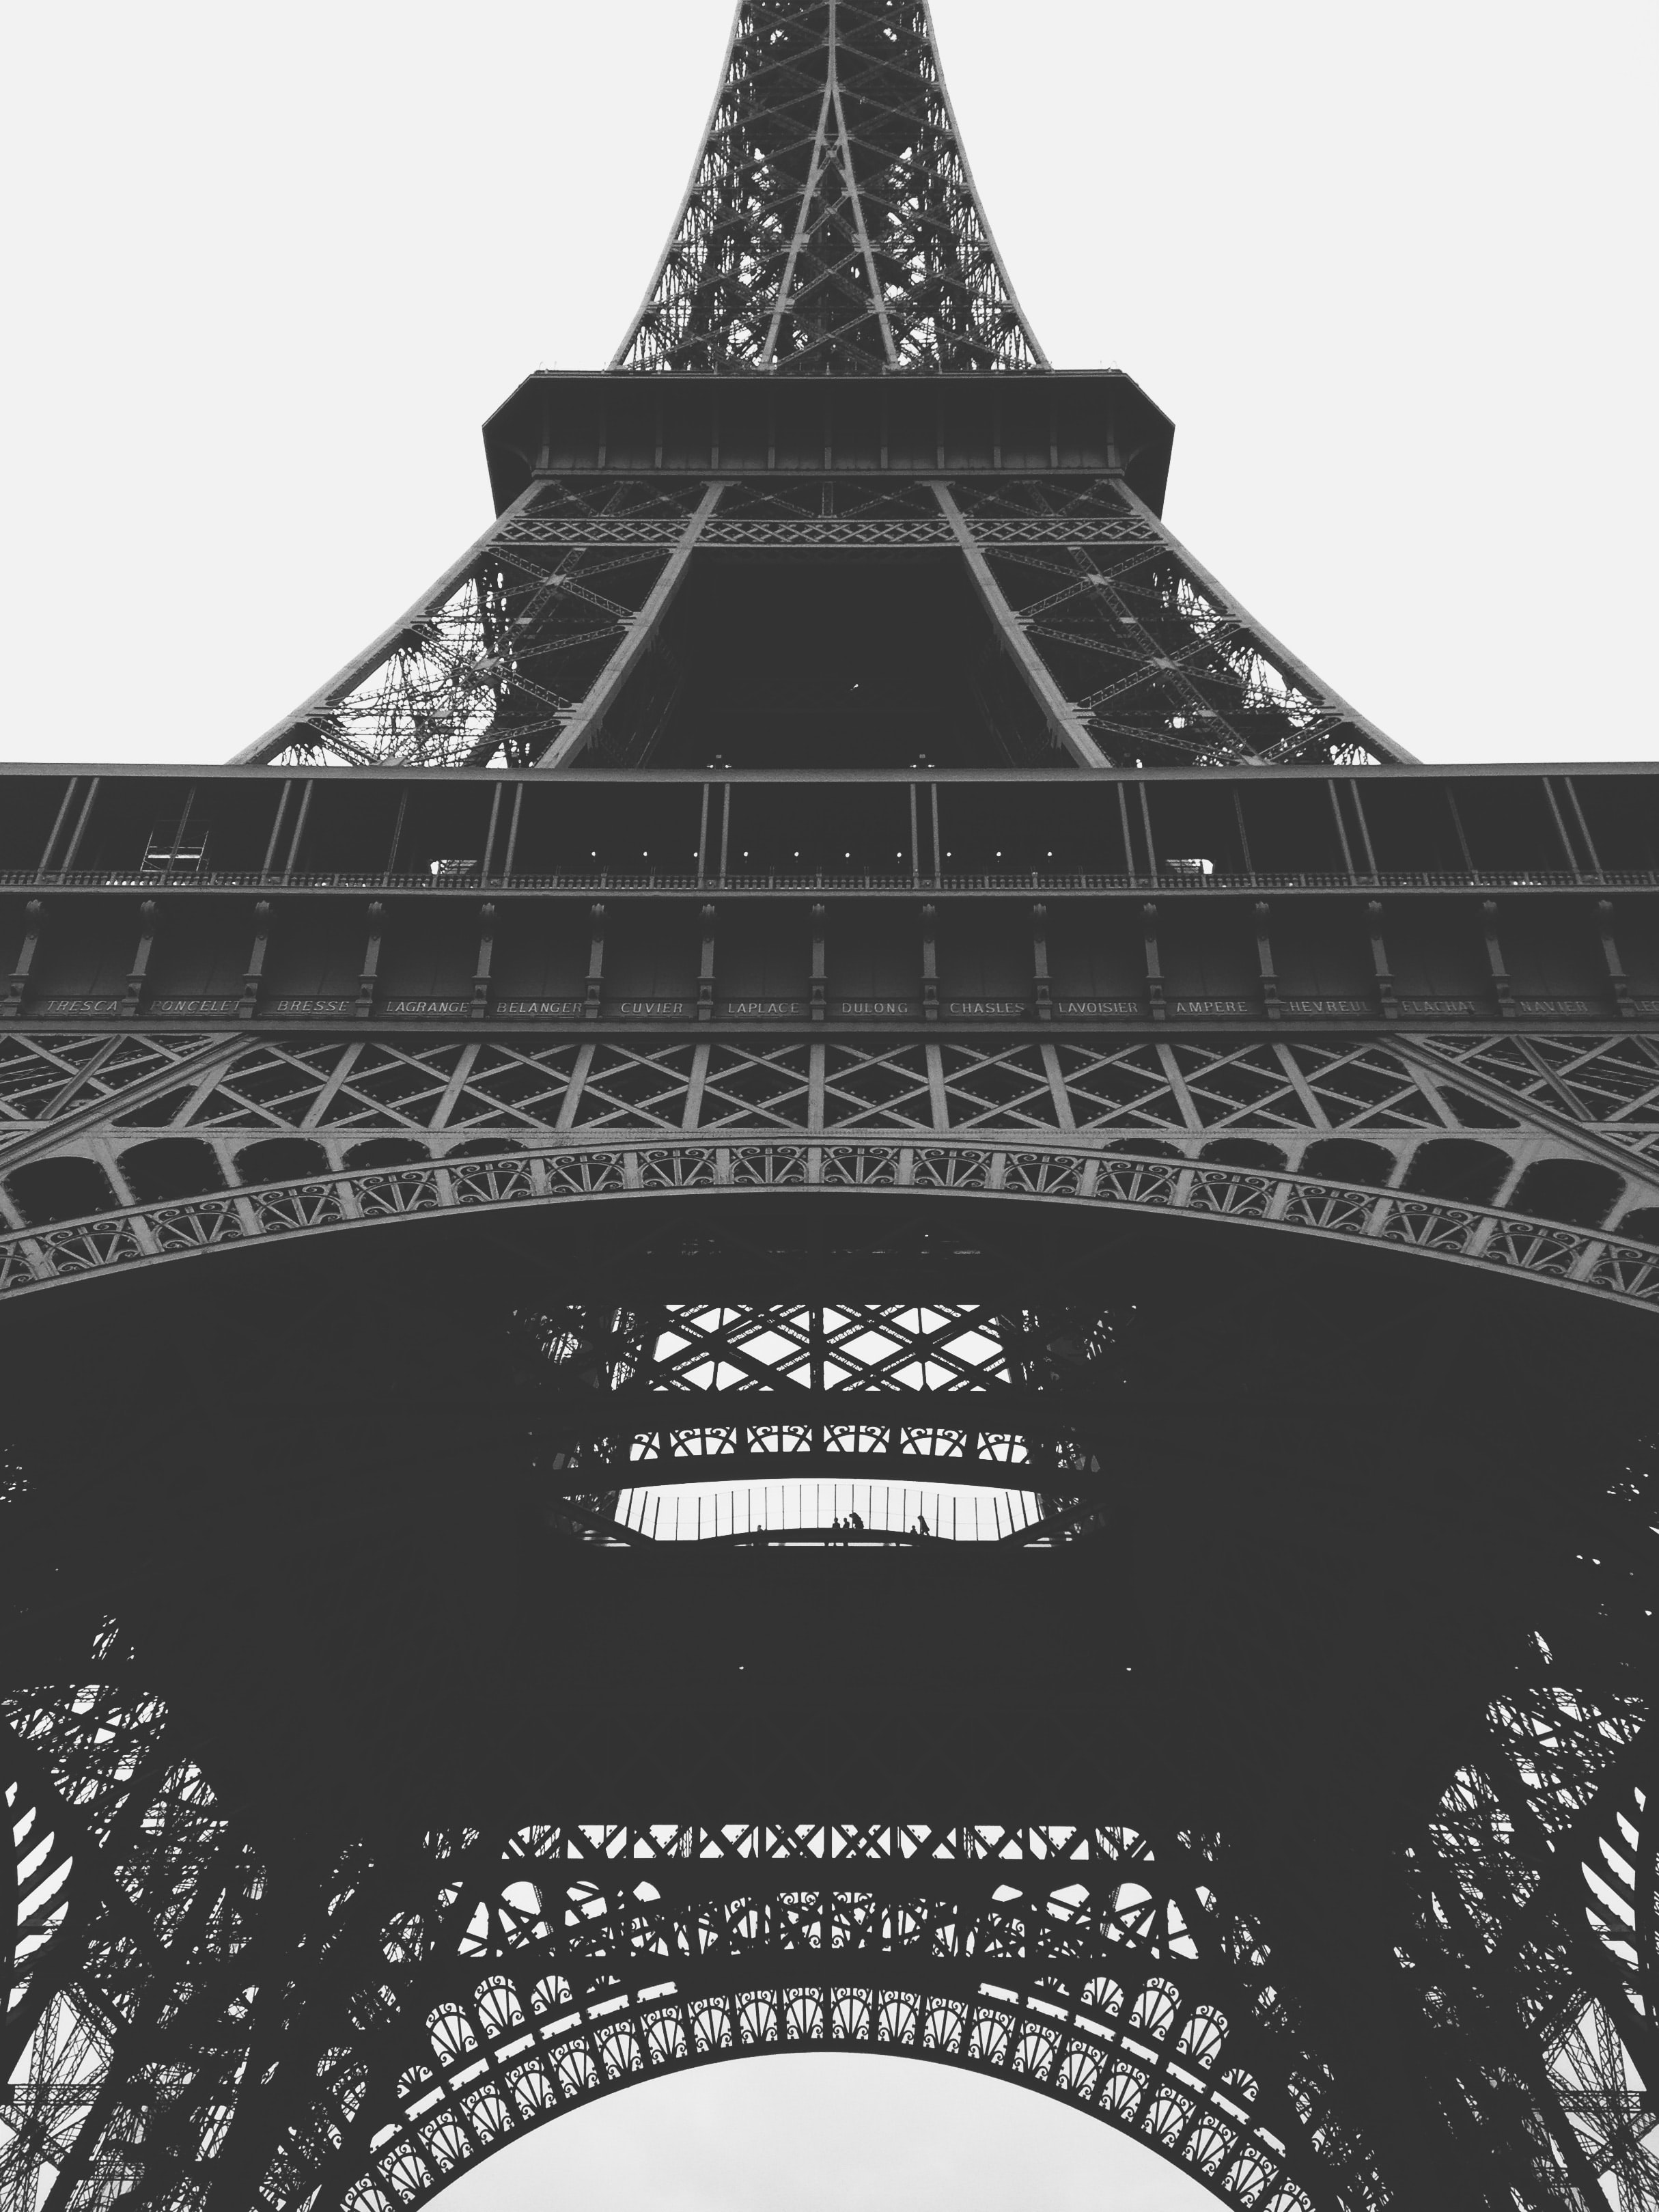 Eiffel Tower of Paris grayscale photo